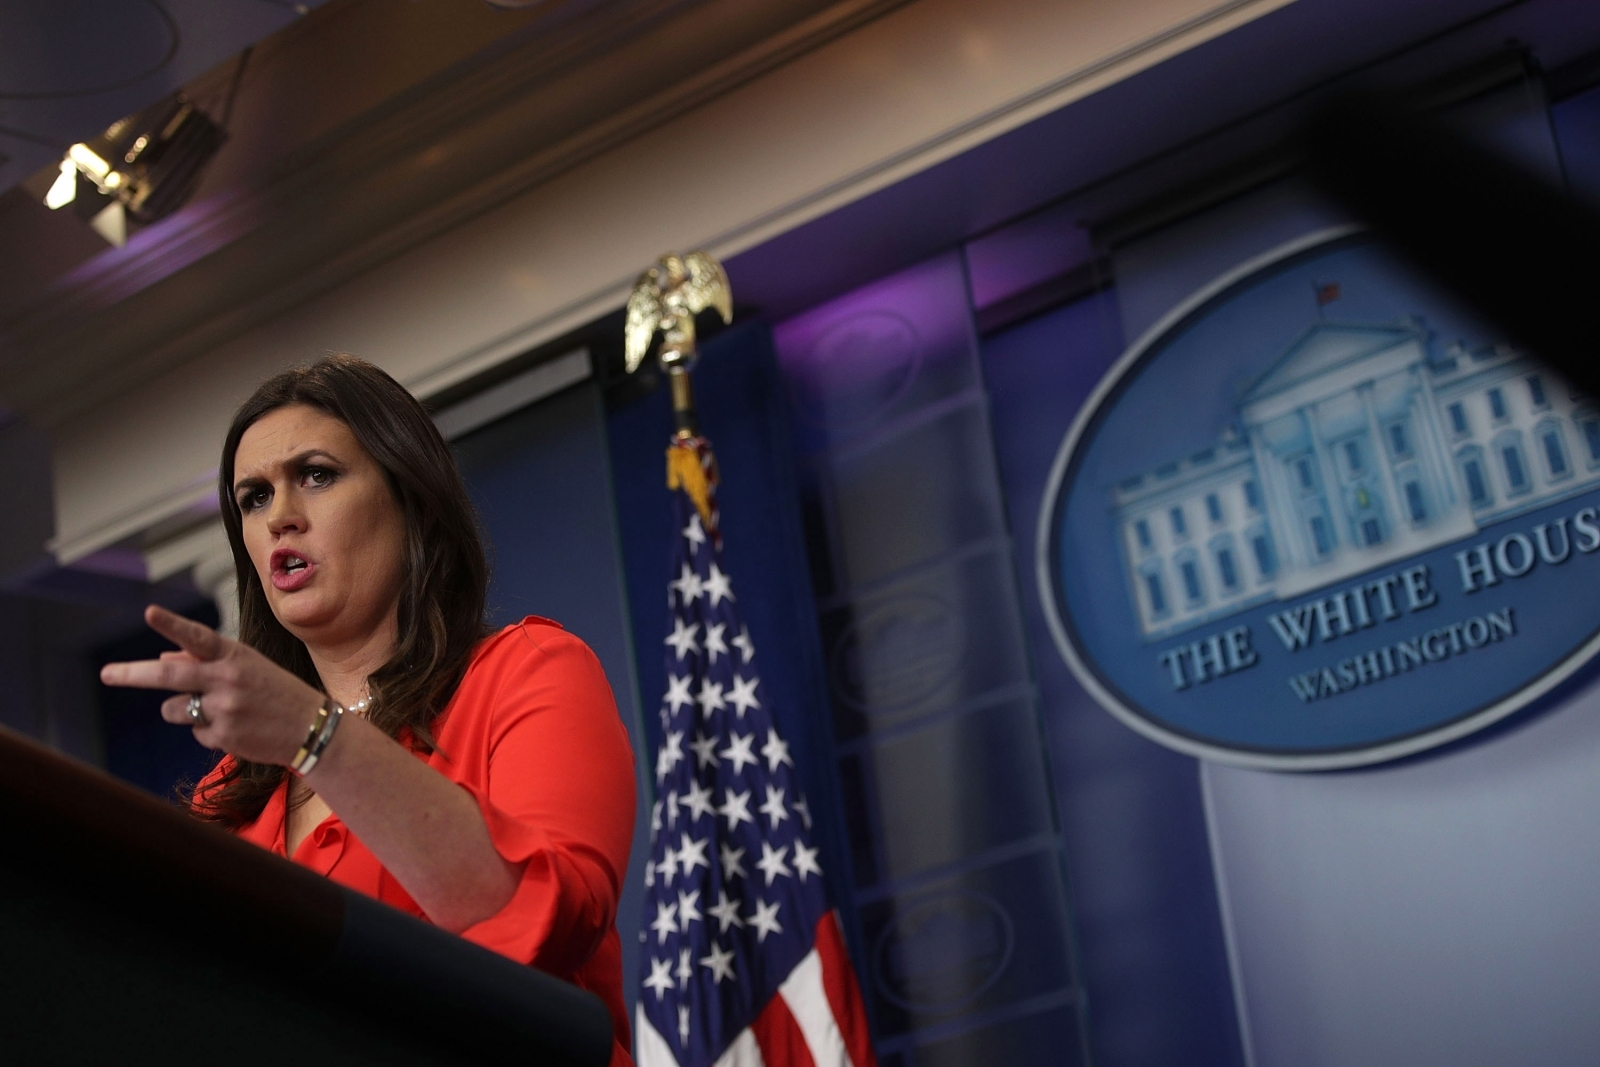 Sarah Sanders uses White House Twitter account to attack Amazon Echo